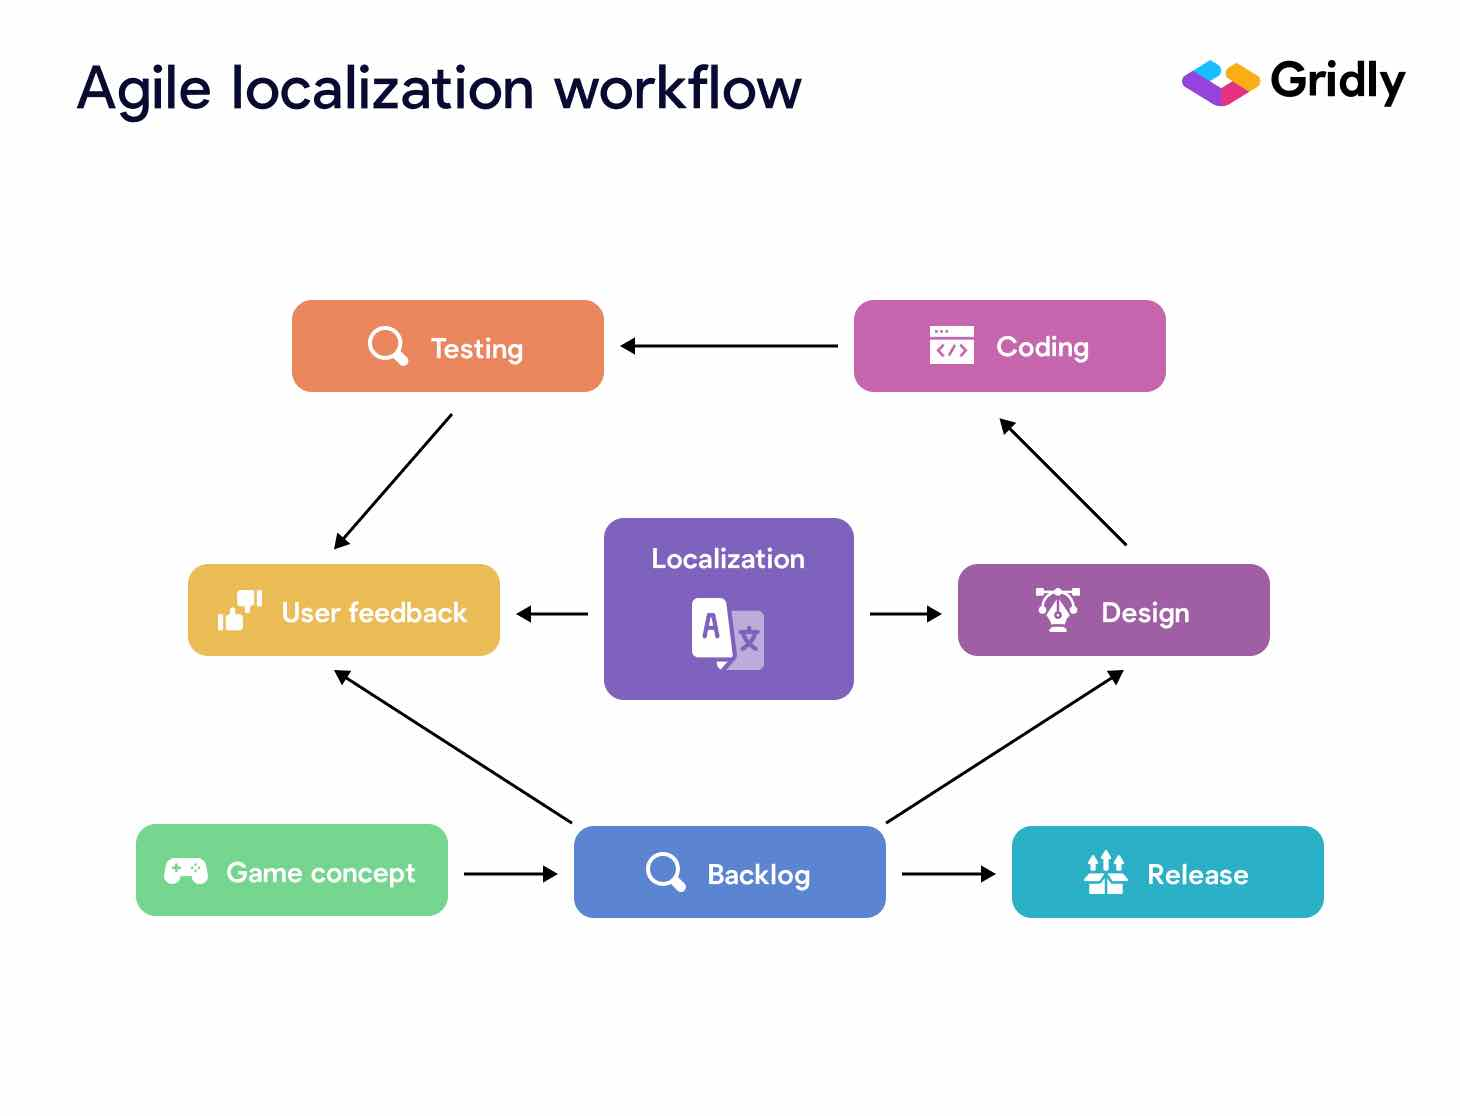 agile localization workflow infographic